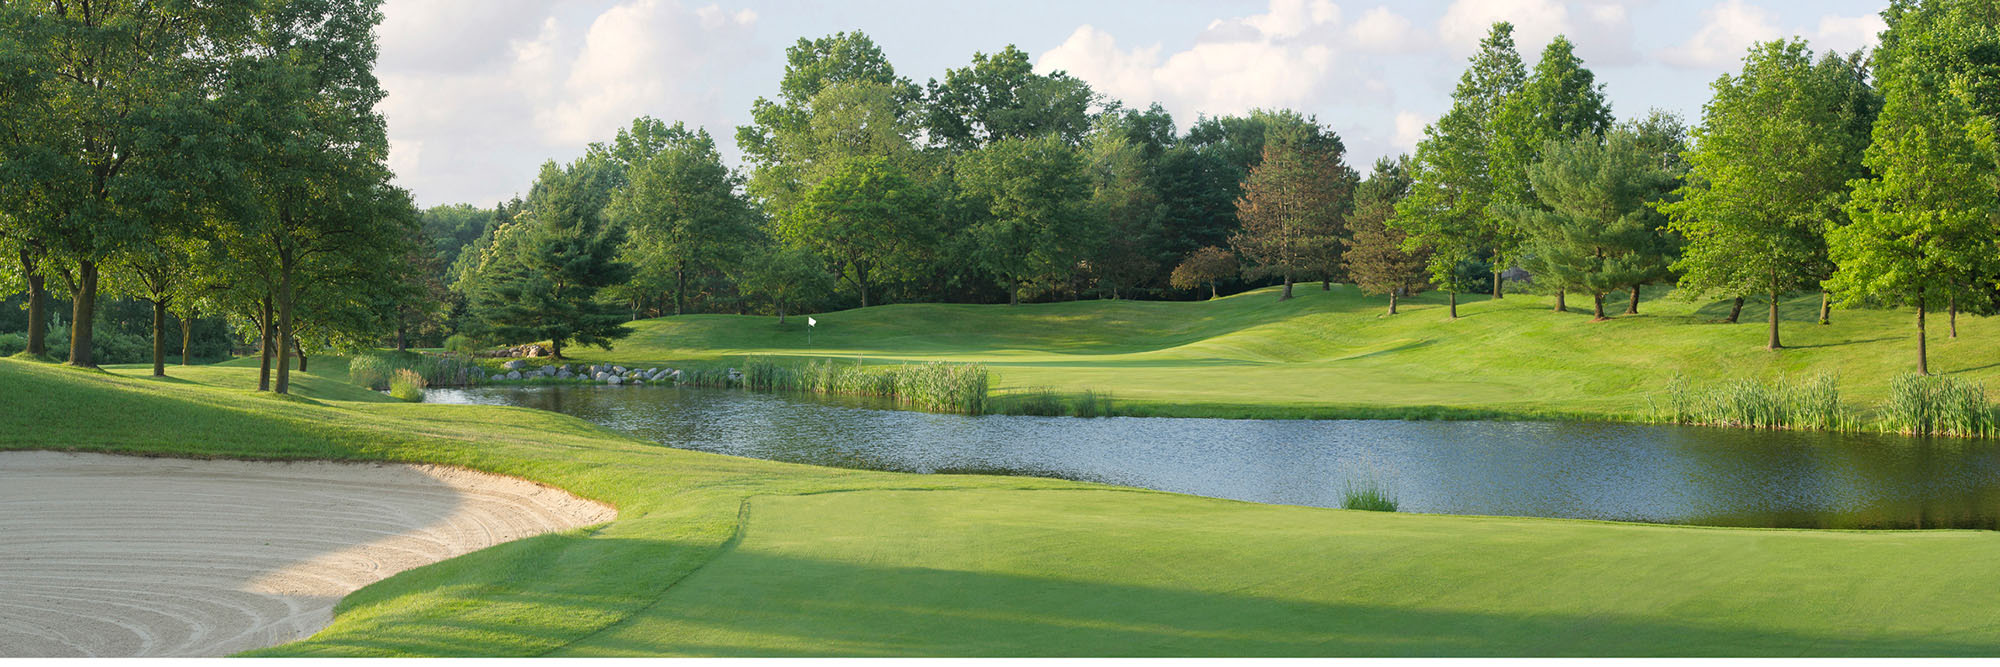 Golf Course Image - Glenmoor Country Club No. 11